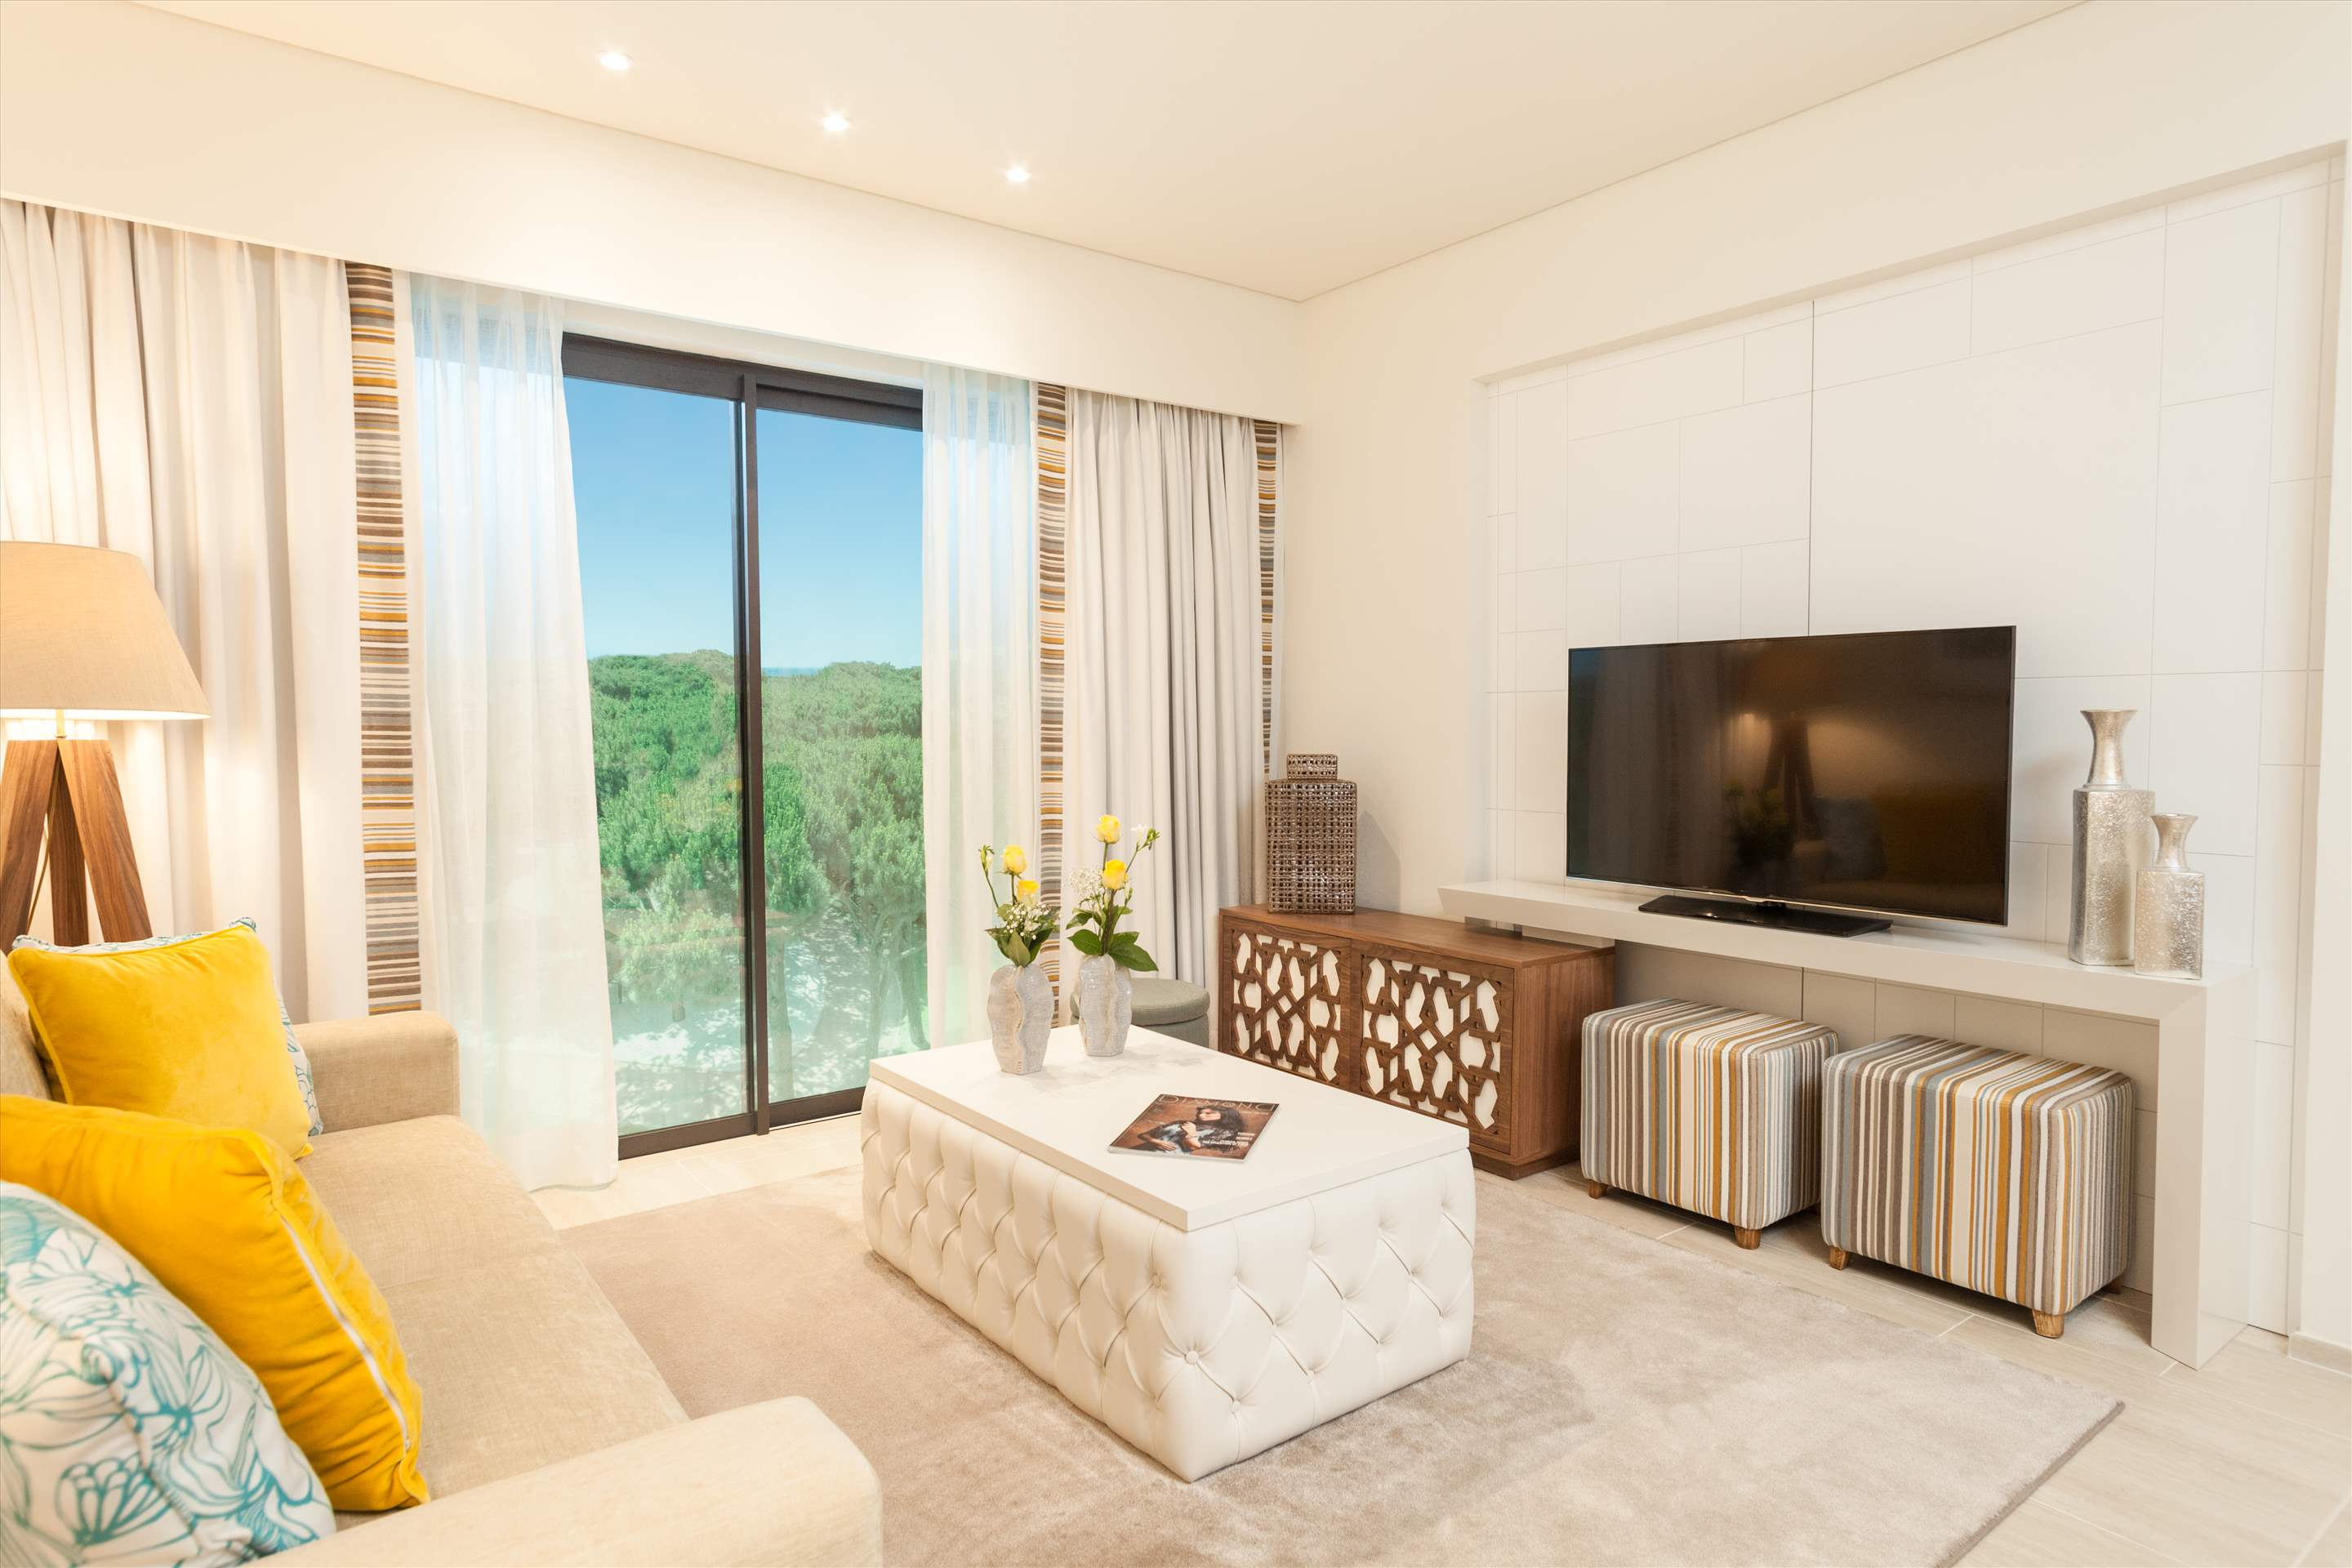 Pine Cliffs Gardens, One Bedroom Suite, S/C Basis, 1 bedroom apartment in Pine Cliffs Resort, Algarve Photo #3